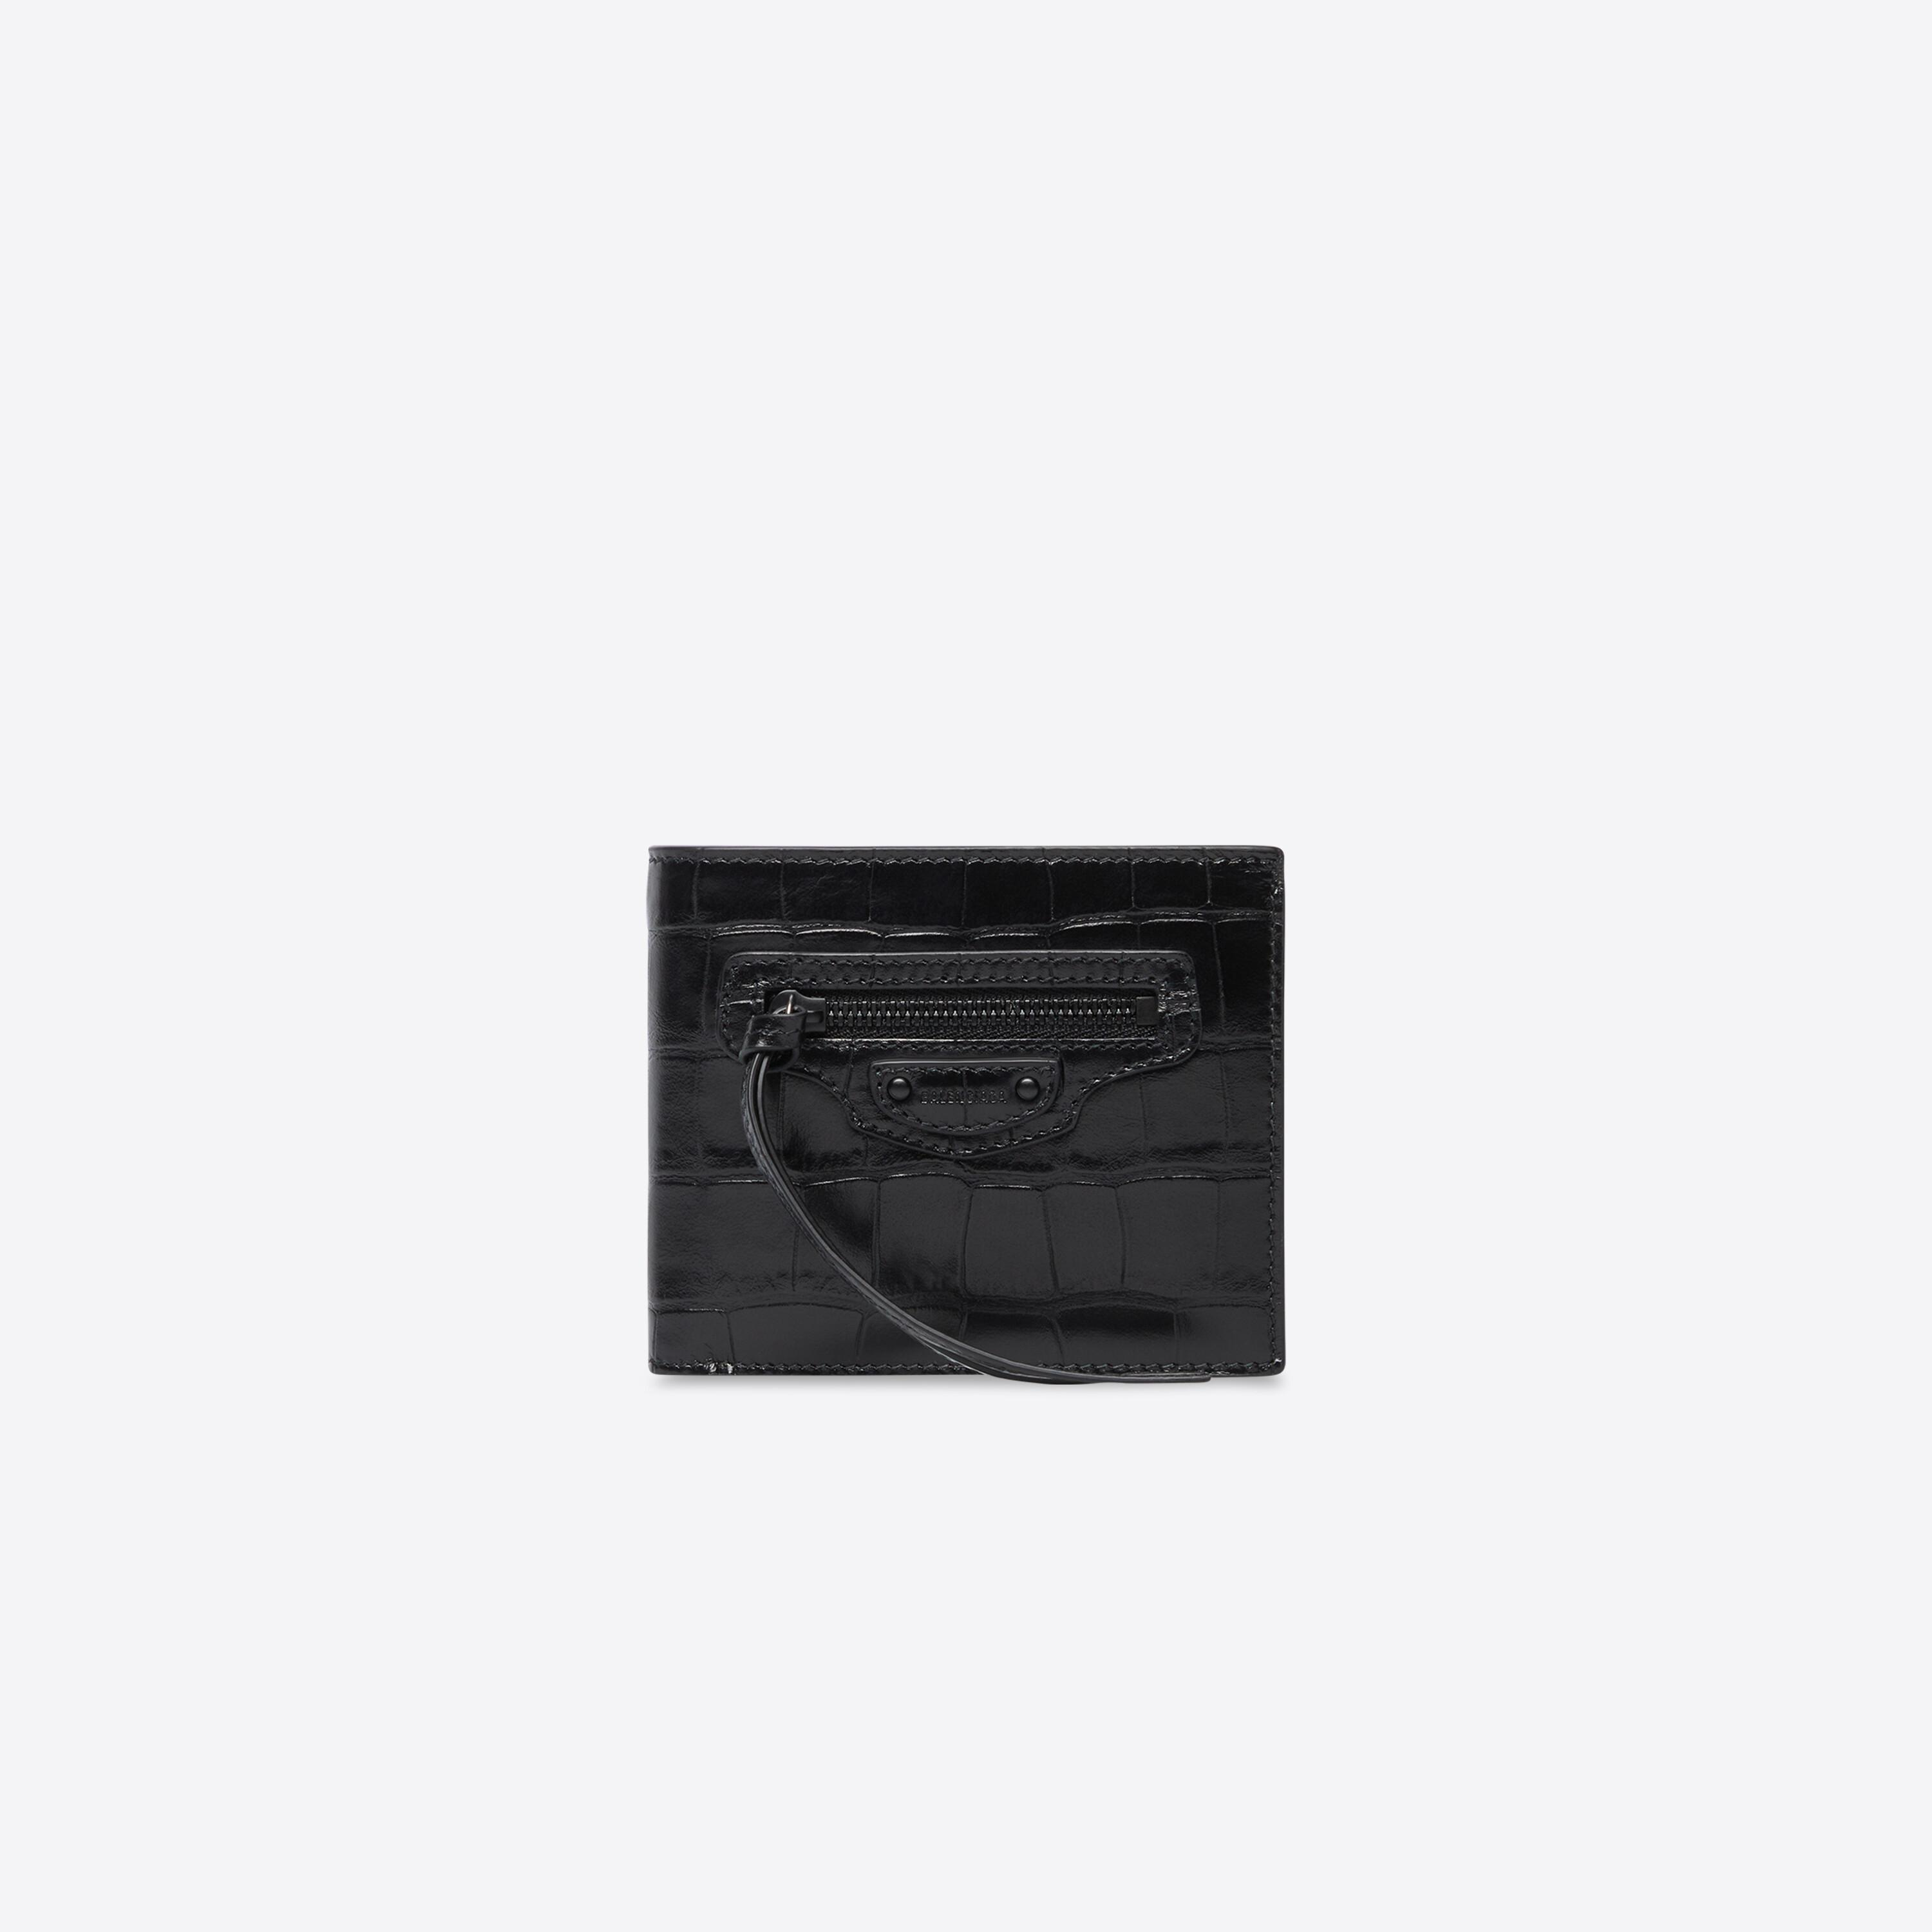 Neo Classic Square Fold Coin Wallet